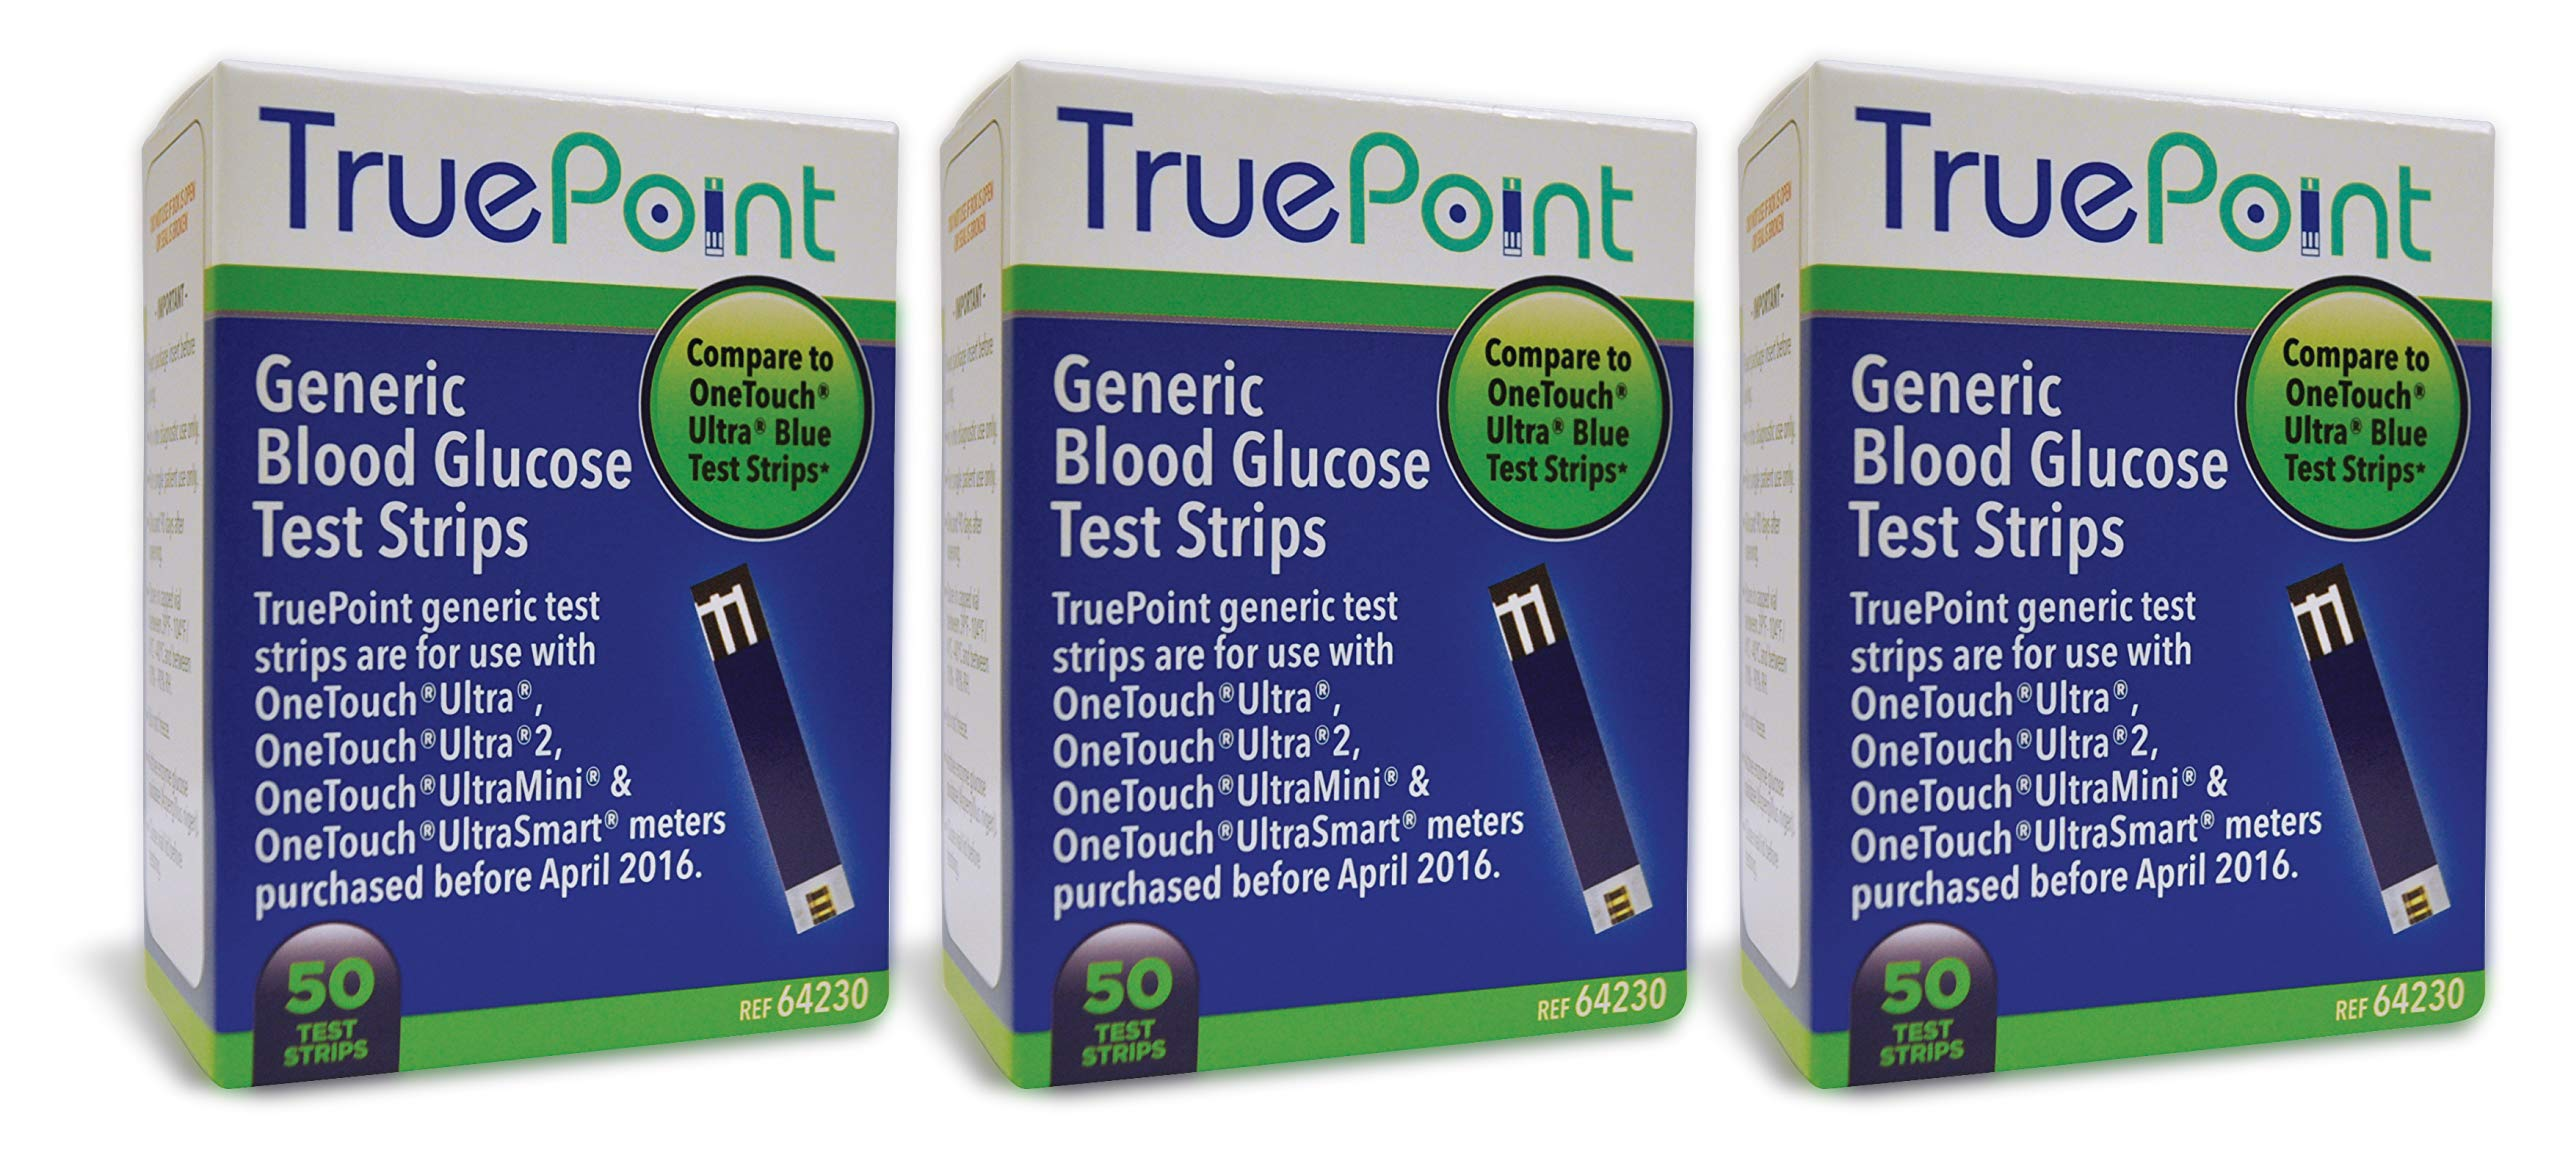 True Point Generic Test Strips 150 Count for Use with One Touch Ultra, Ultra 2 and Ultra Mini Meter. by True Point Generic Test Strips